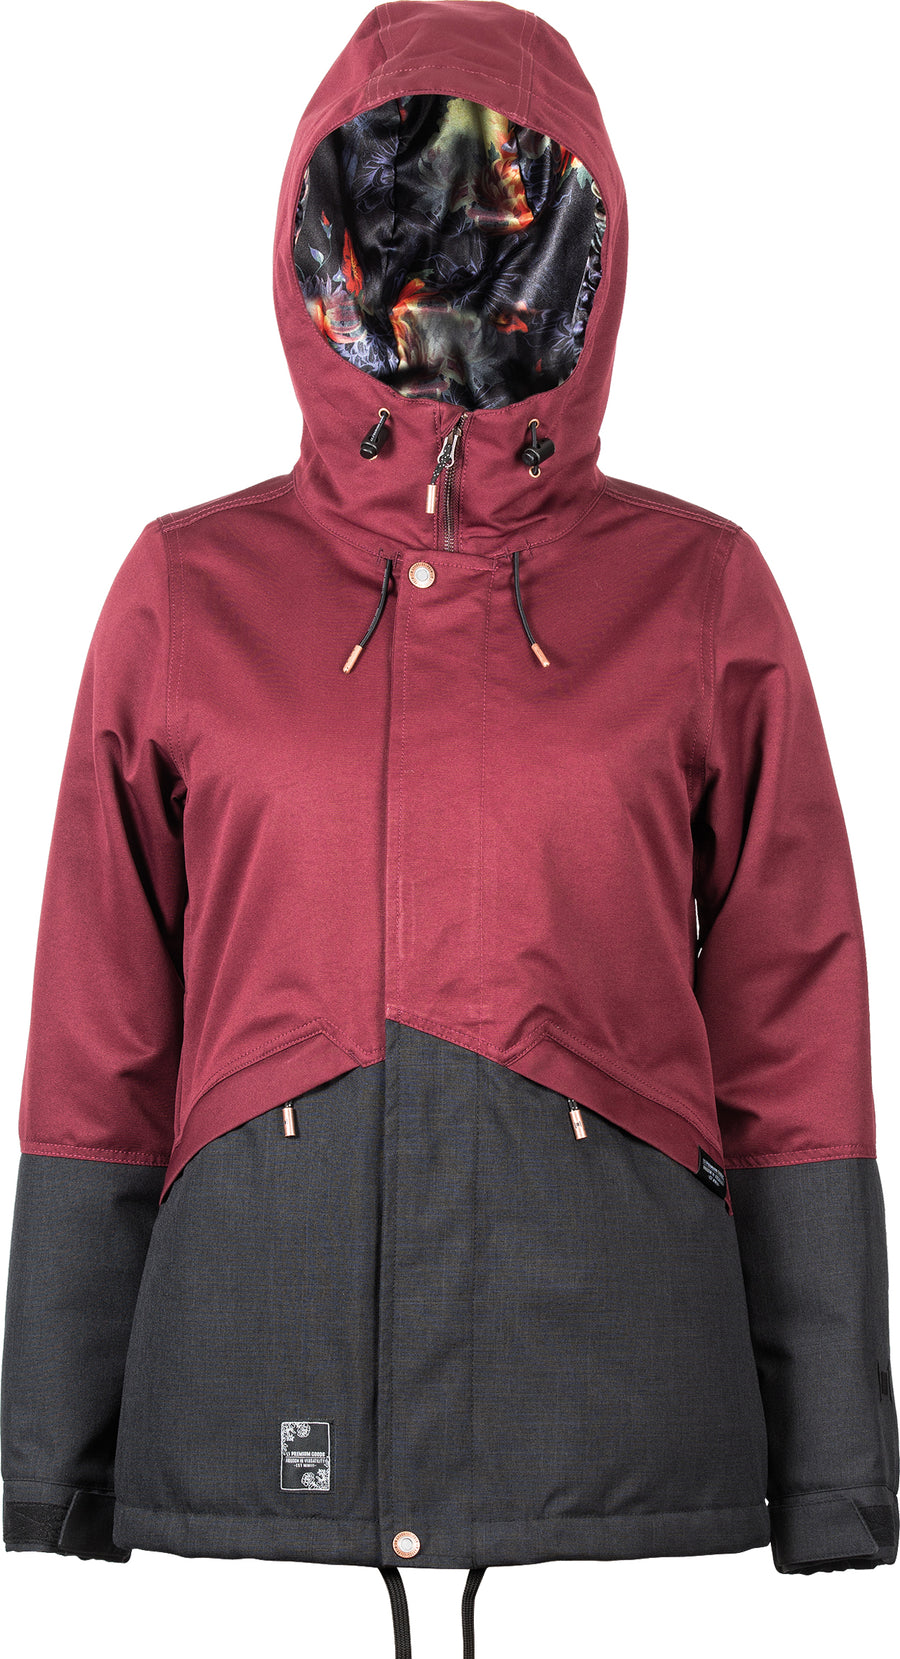 2021 L1 Lalena Womens Snow Jacket in Wine and Black